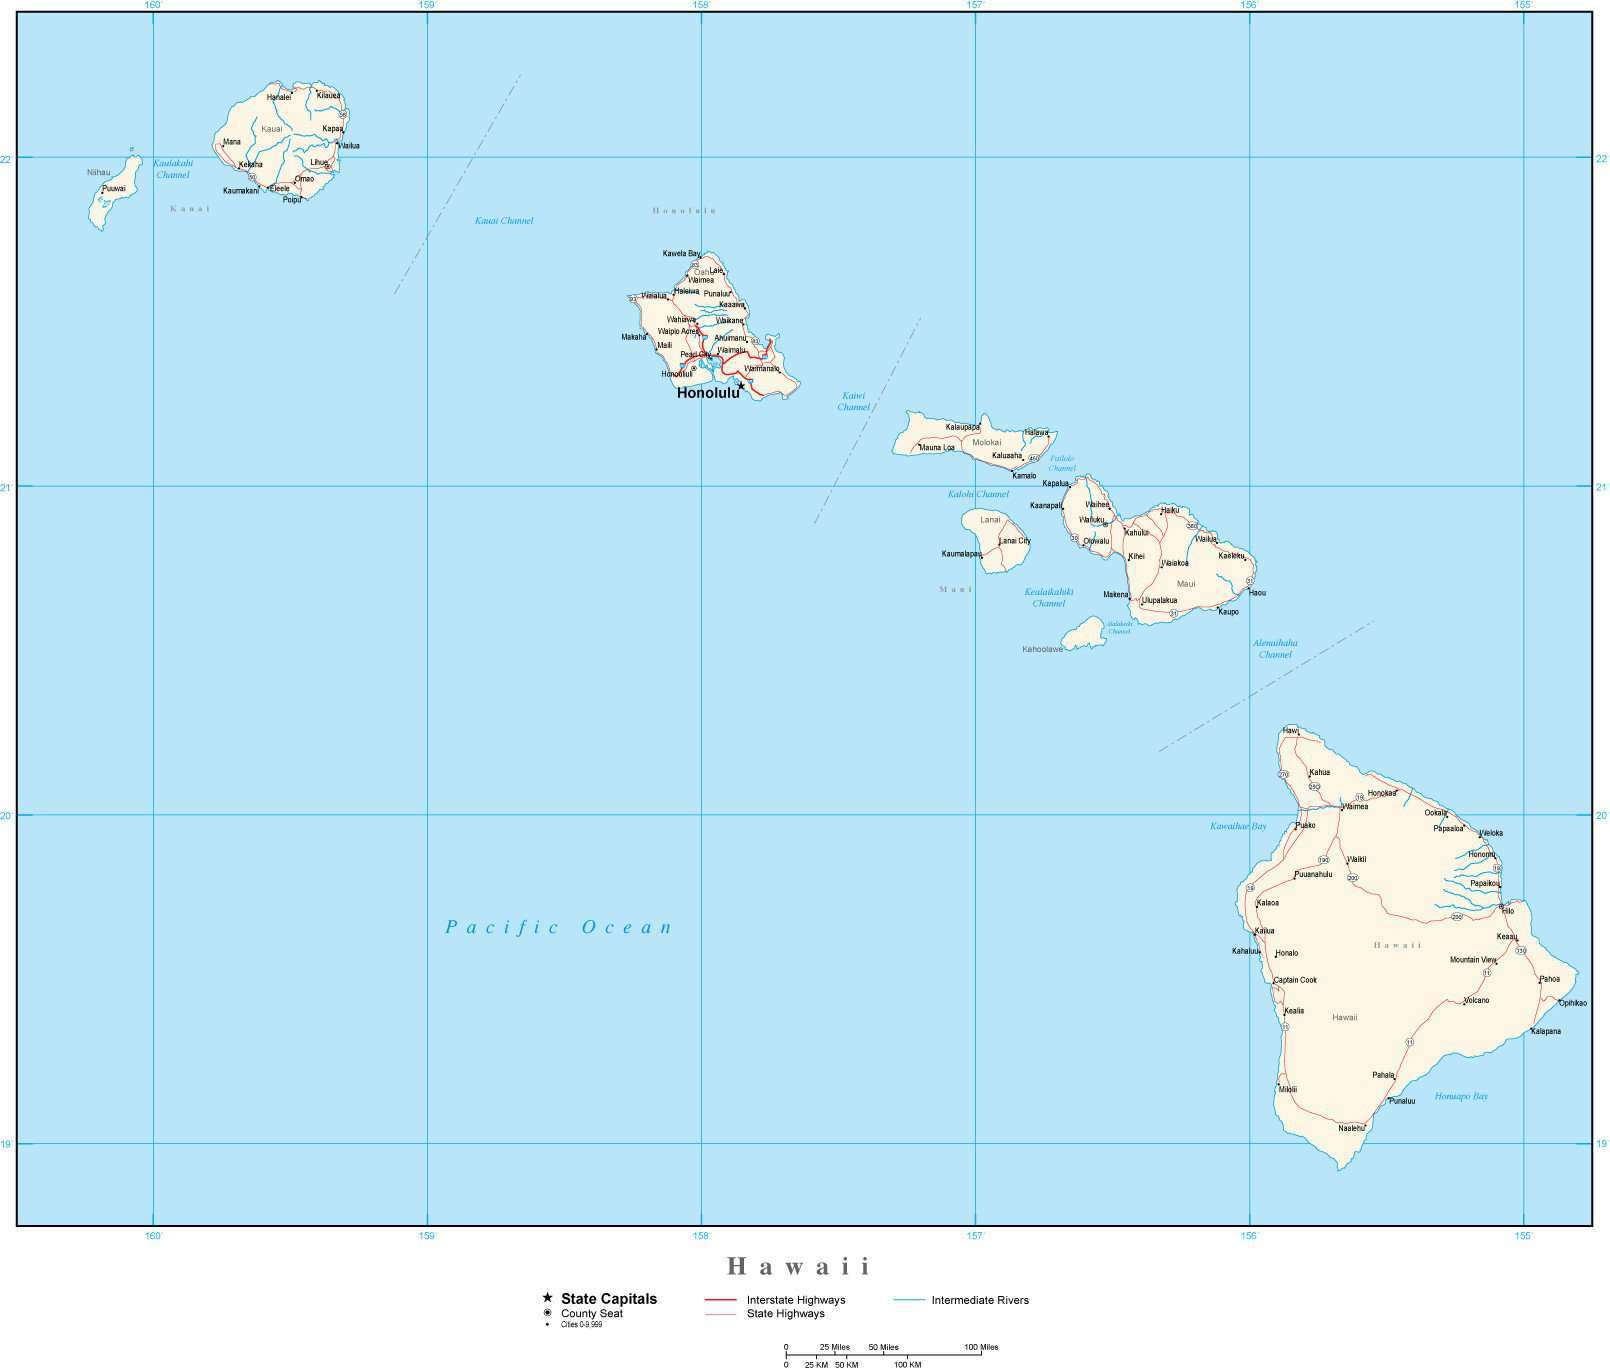 Hawaii Map In Adobe Illustrator Vector Format Map Resources